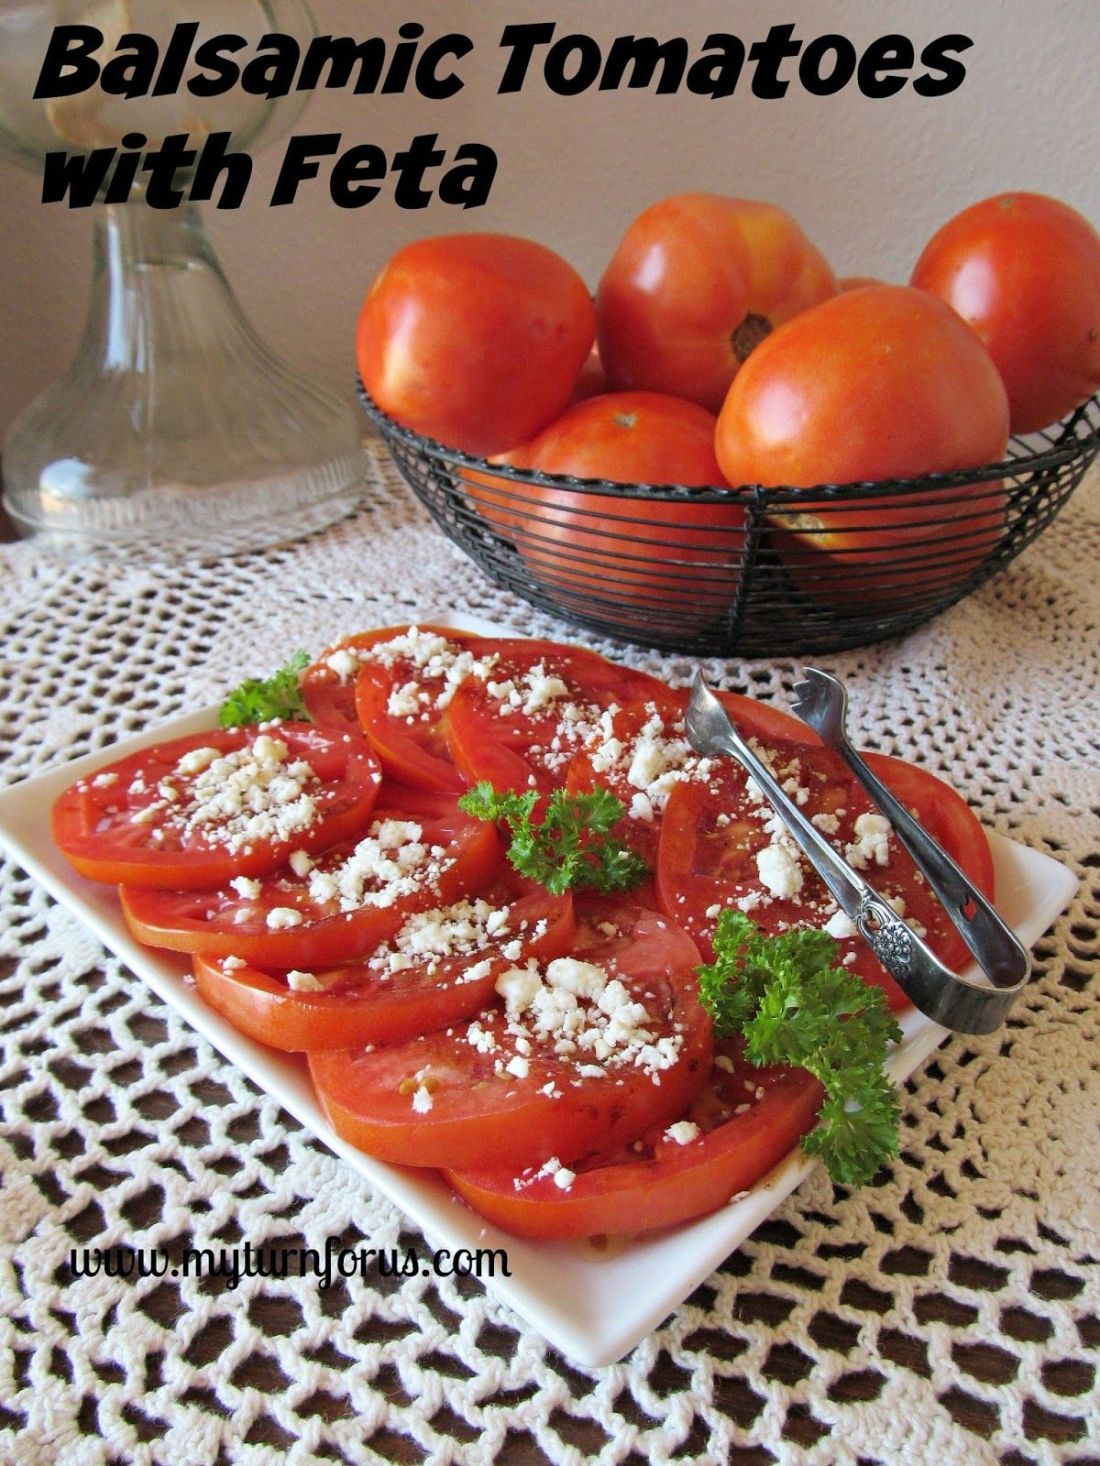 Balsamic tomatoes with feta cheese recipe with images